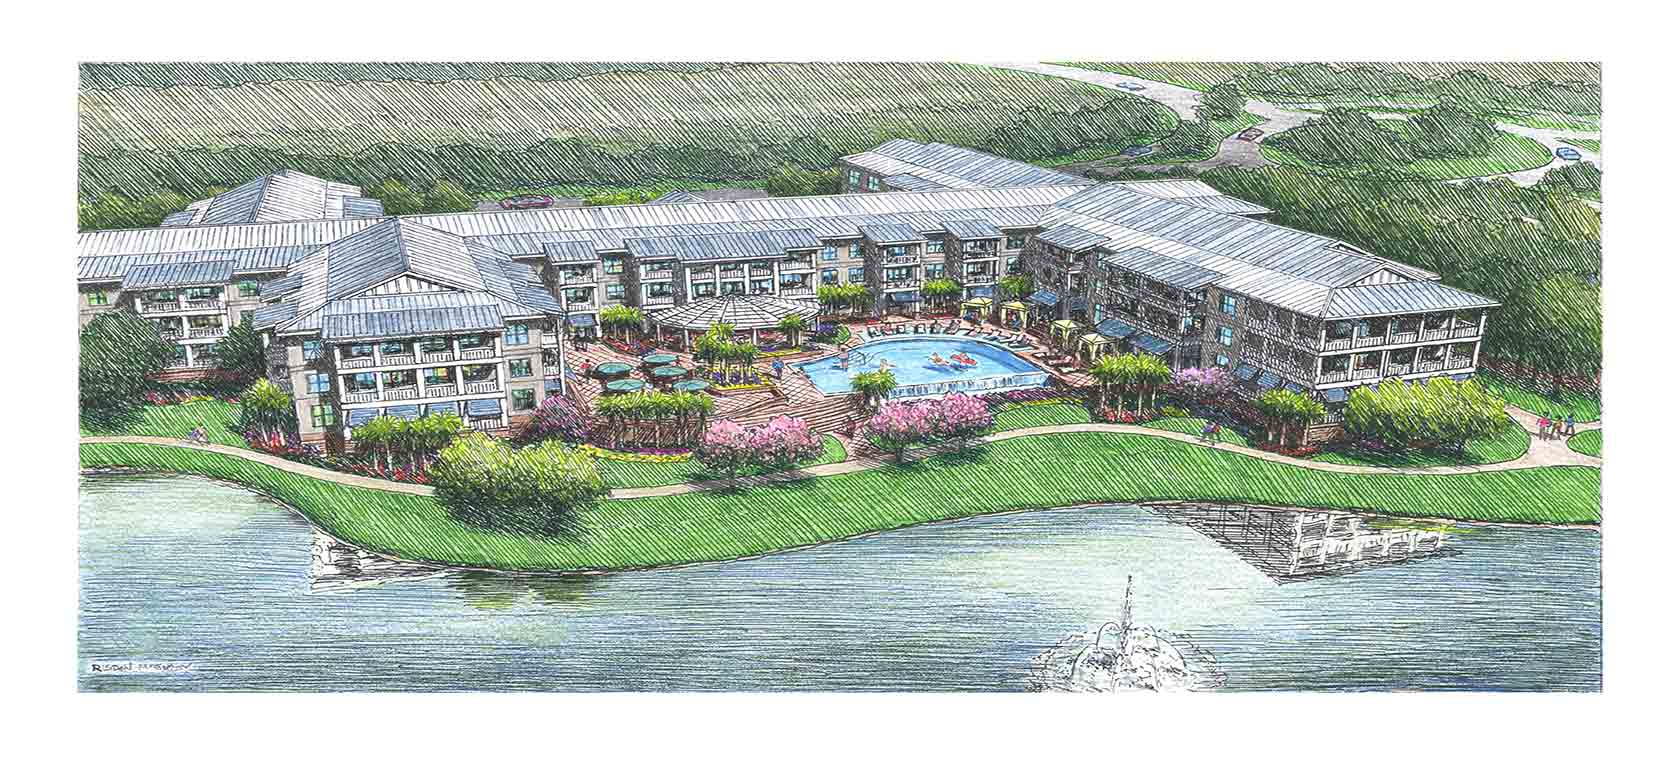 The Post and Courier: The New Face of Senior Living